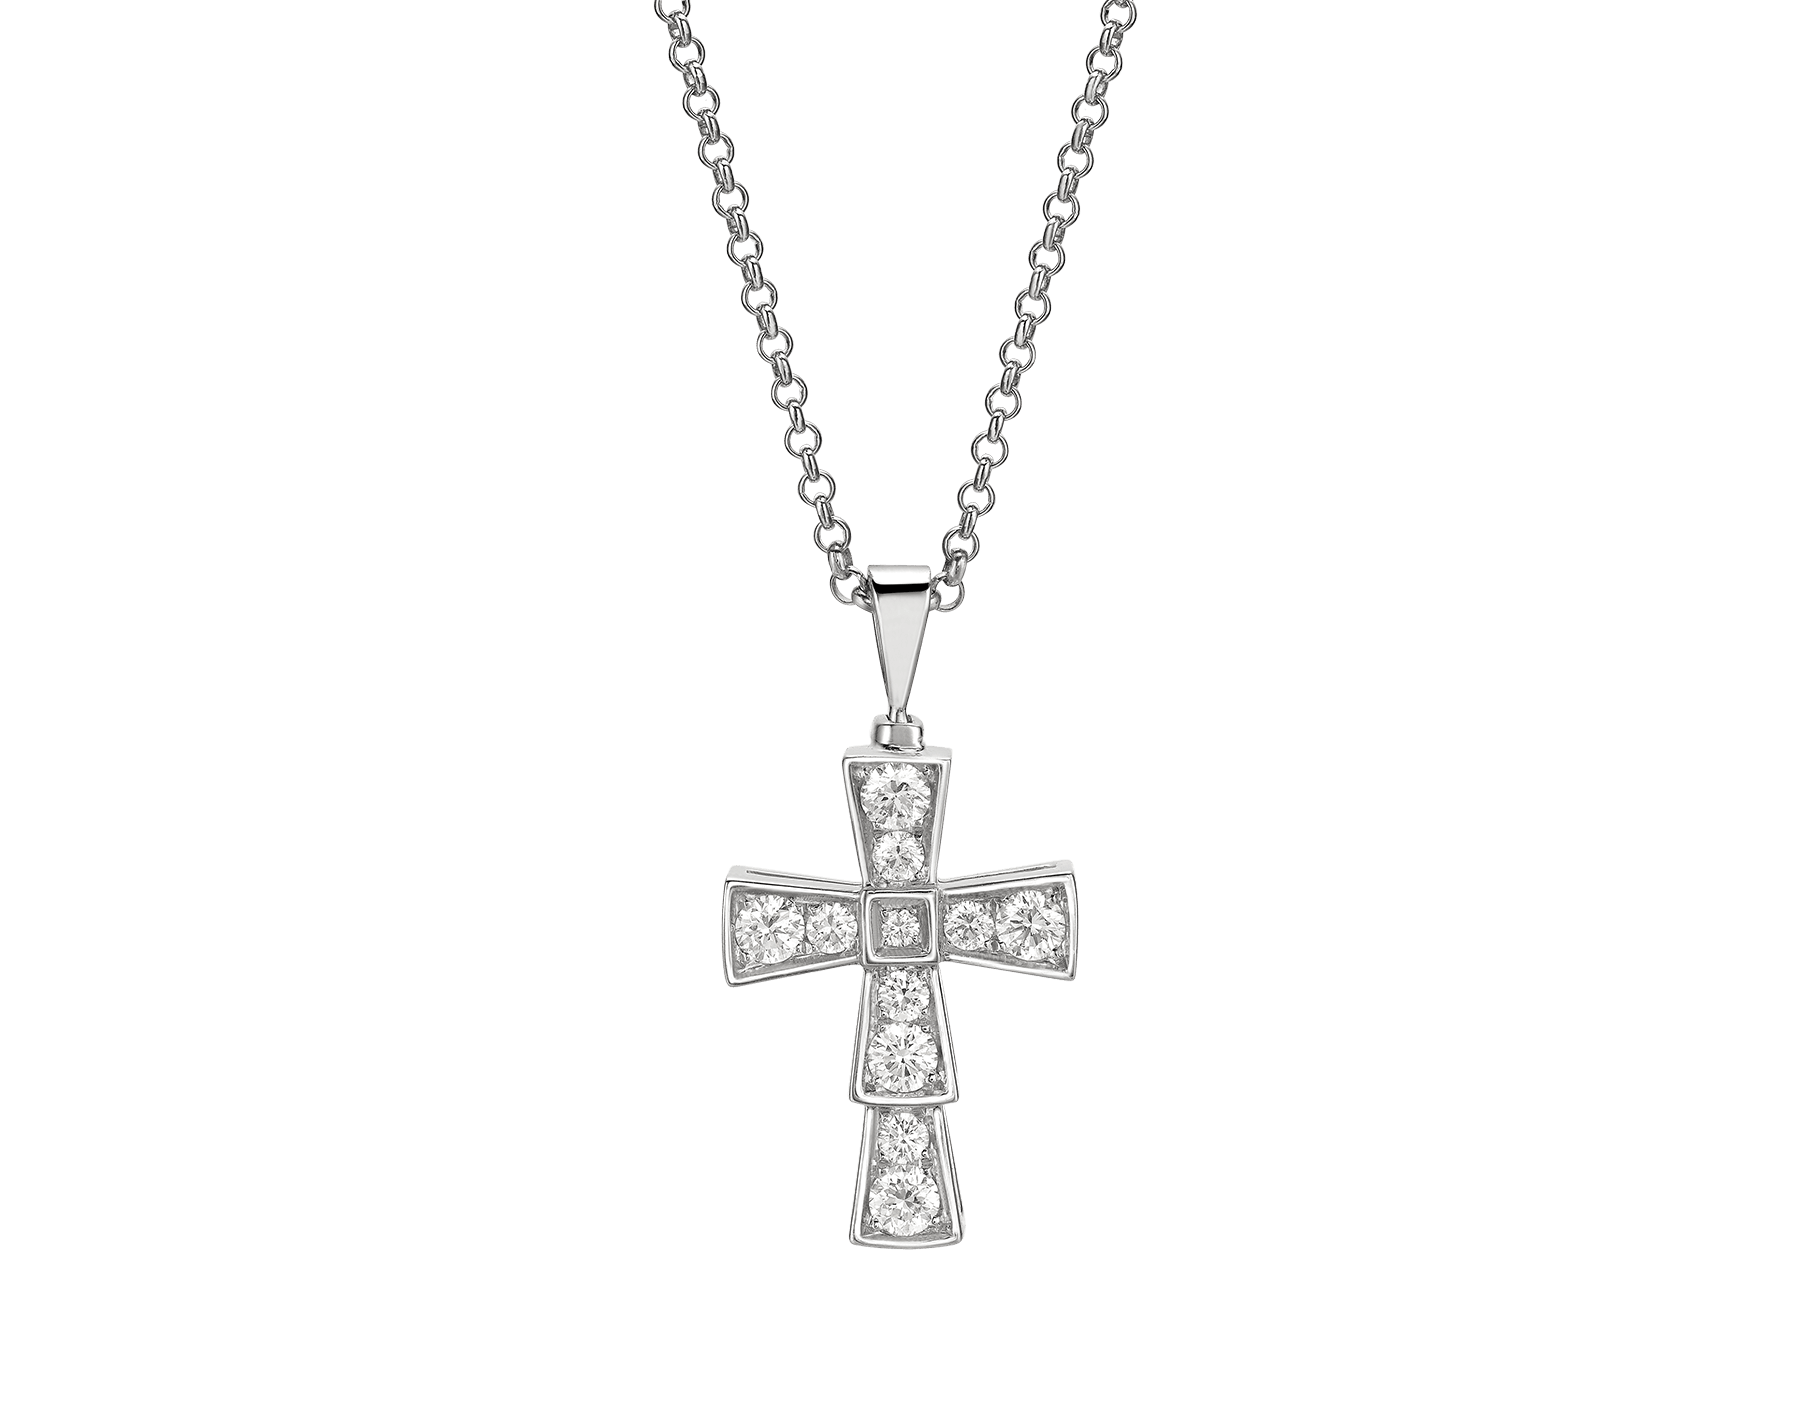 Croce pendant in 18 kt white gold and pavé diamonds (0.32 ct) 354038 image 1